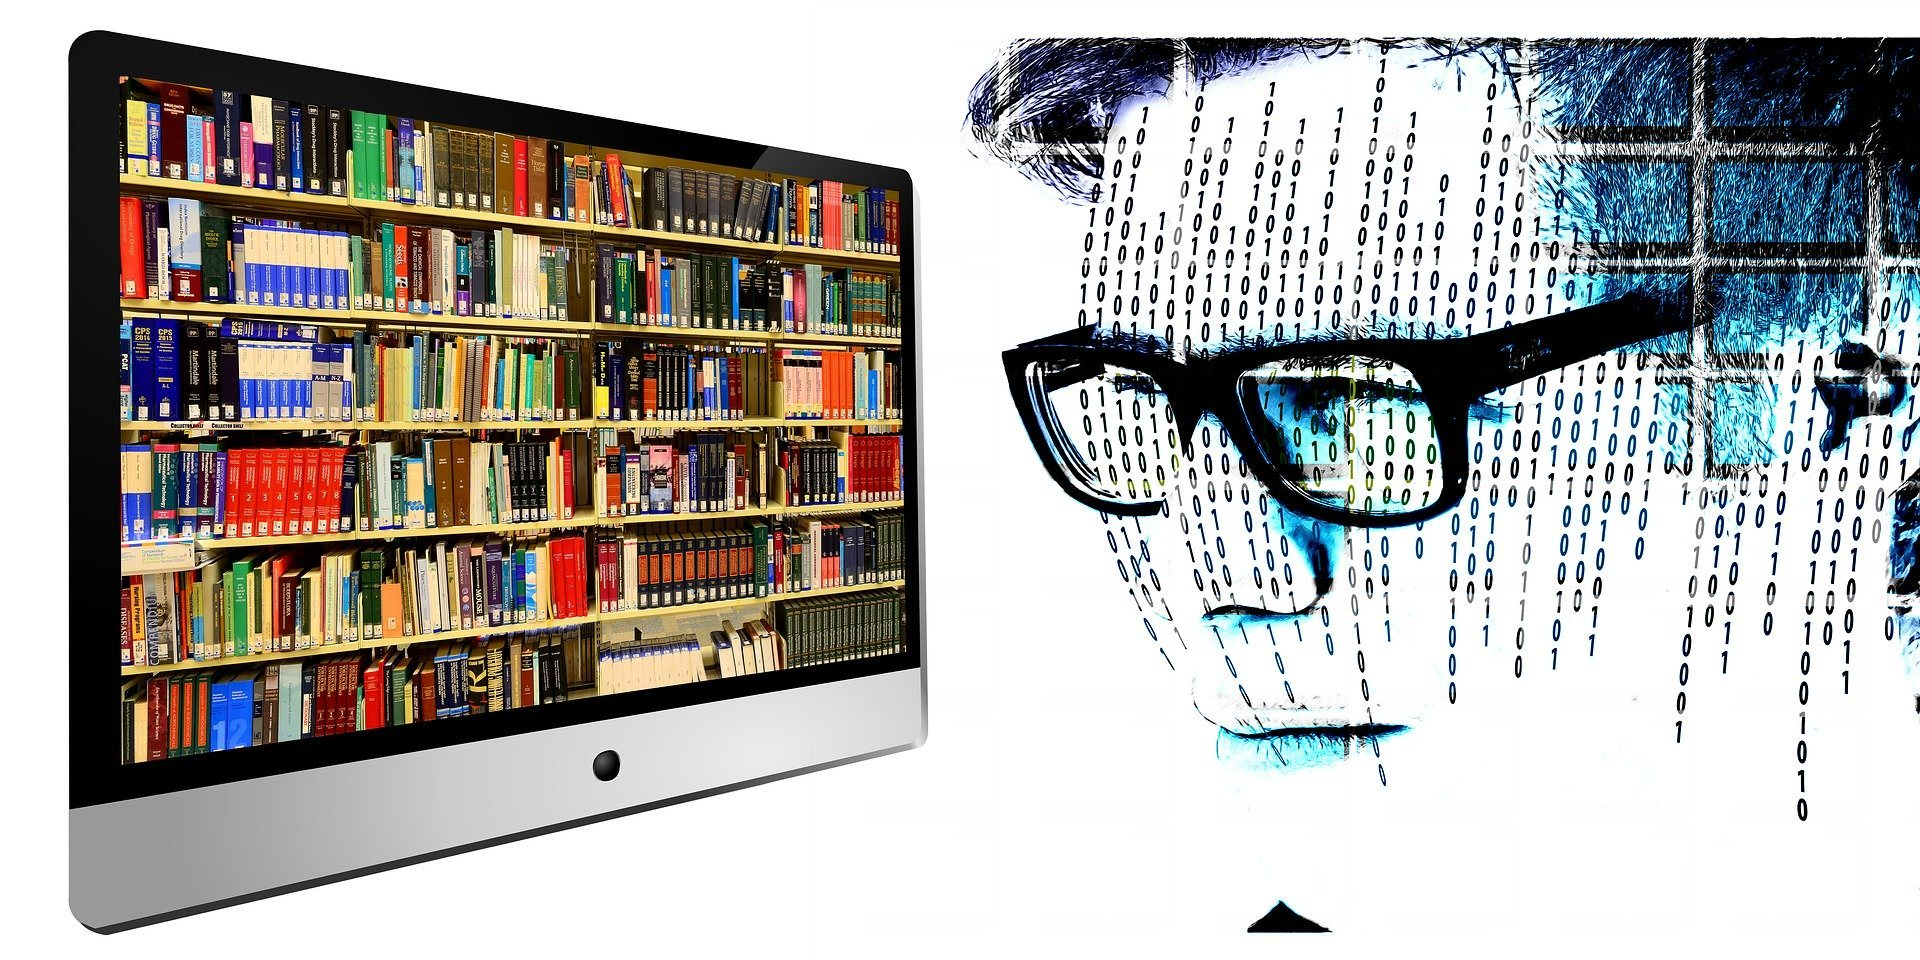 What is Sqribble about? - tool to create e-books